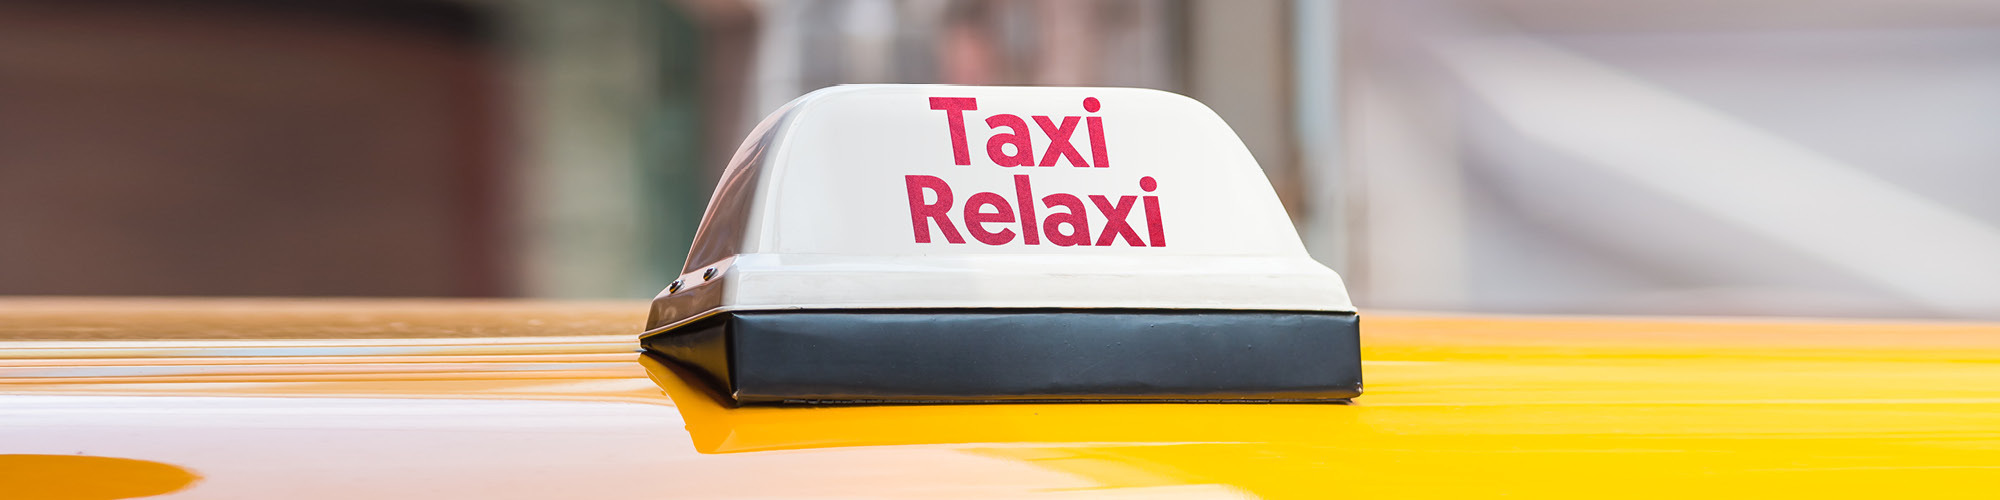 Joe sa taxi relaxi header